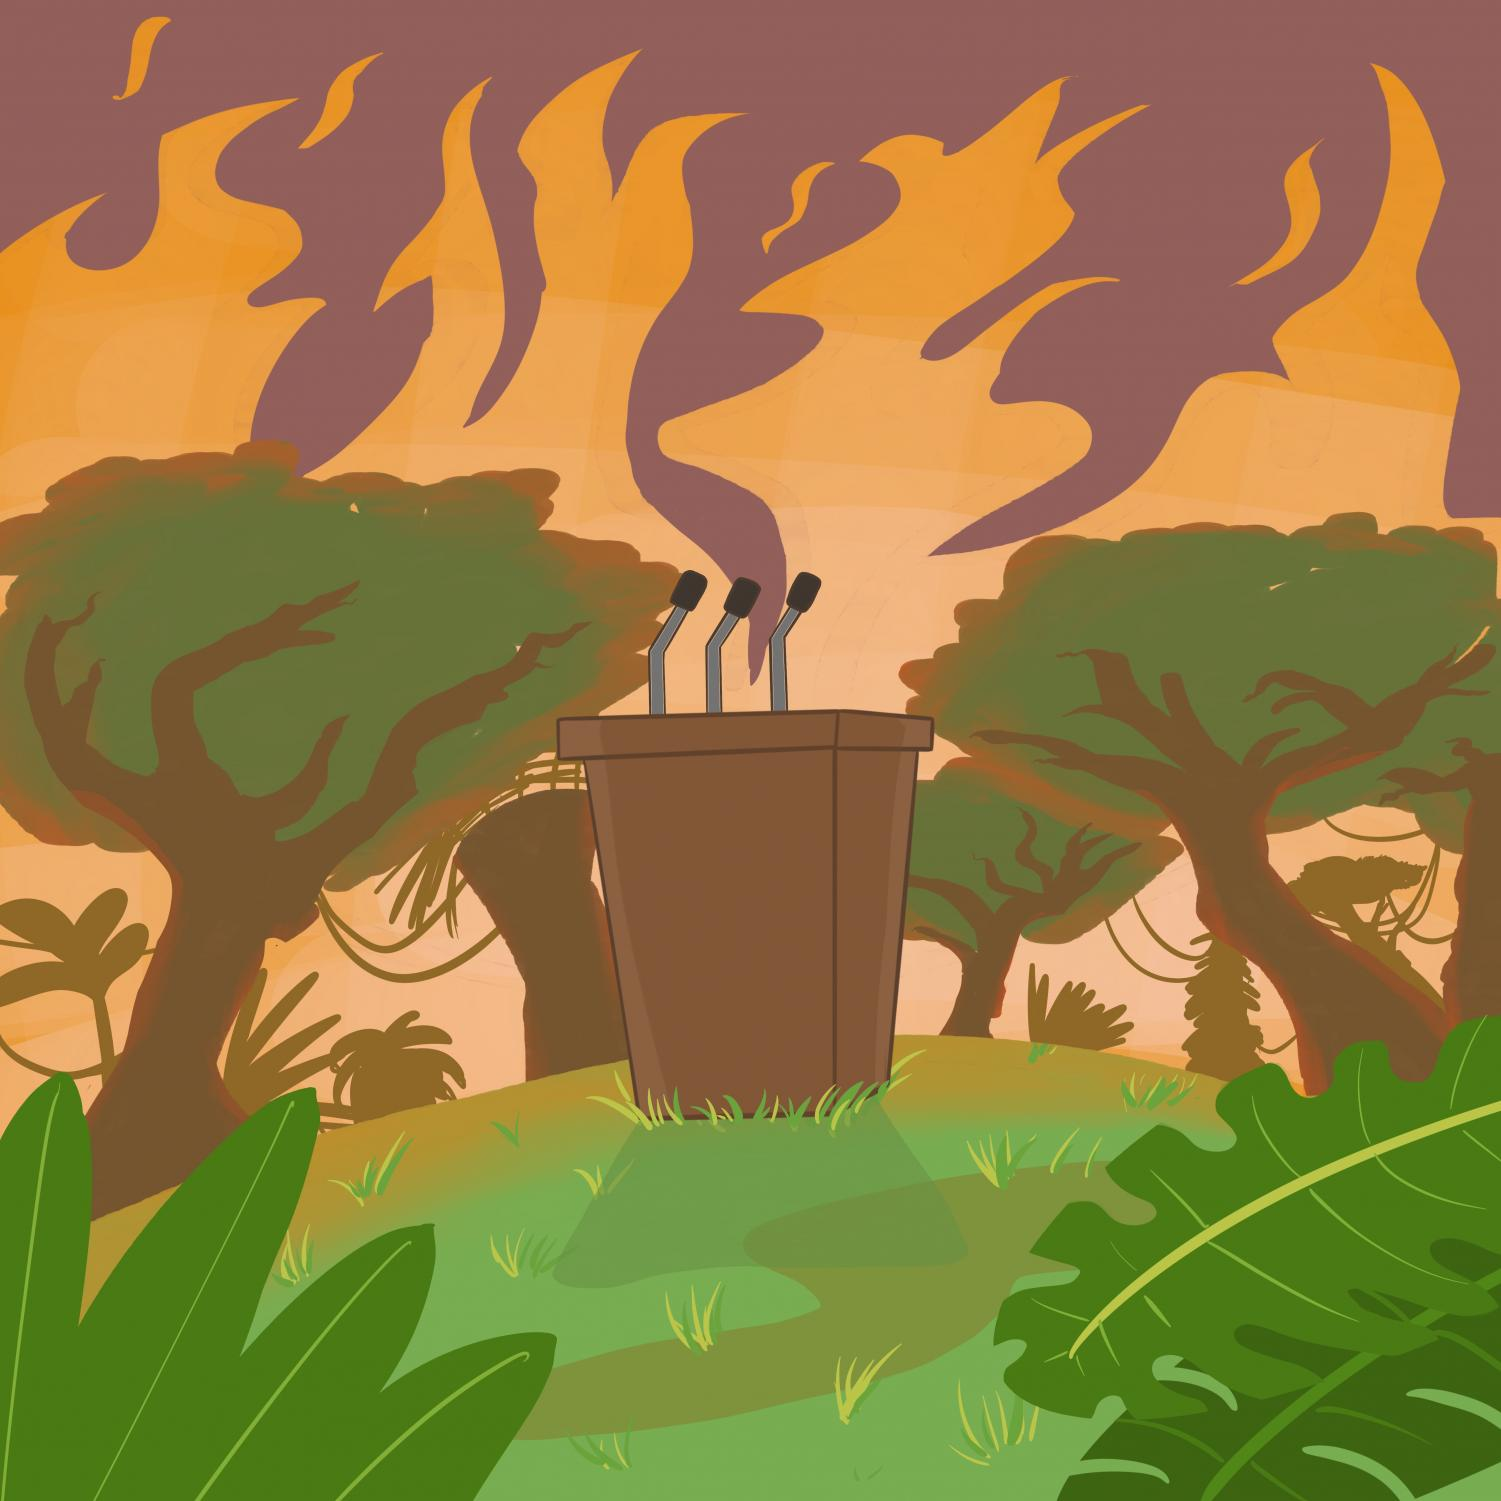 The increased burning and deforestation of the Amazon represents a global problem. With the rise of populist rhetoric hindering diplomatic solutions, could the flames represent a new reality to a changing international order? (graphic by: Jessica Tapia)